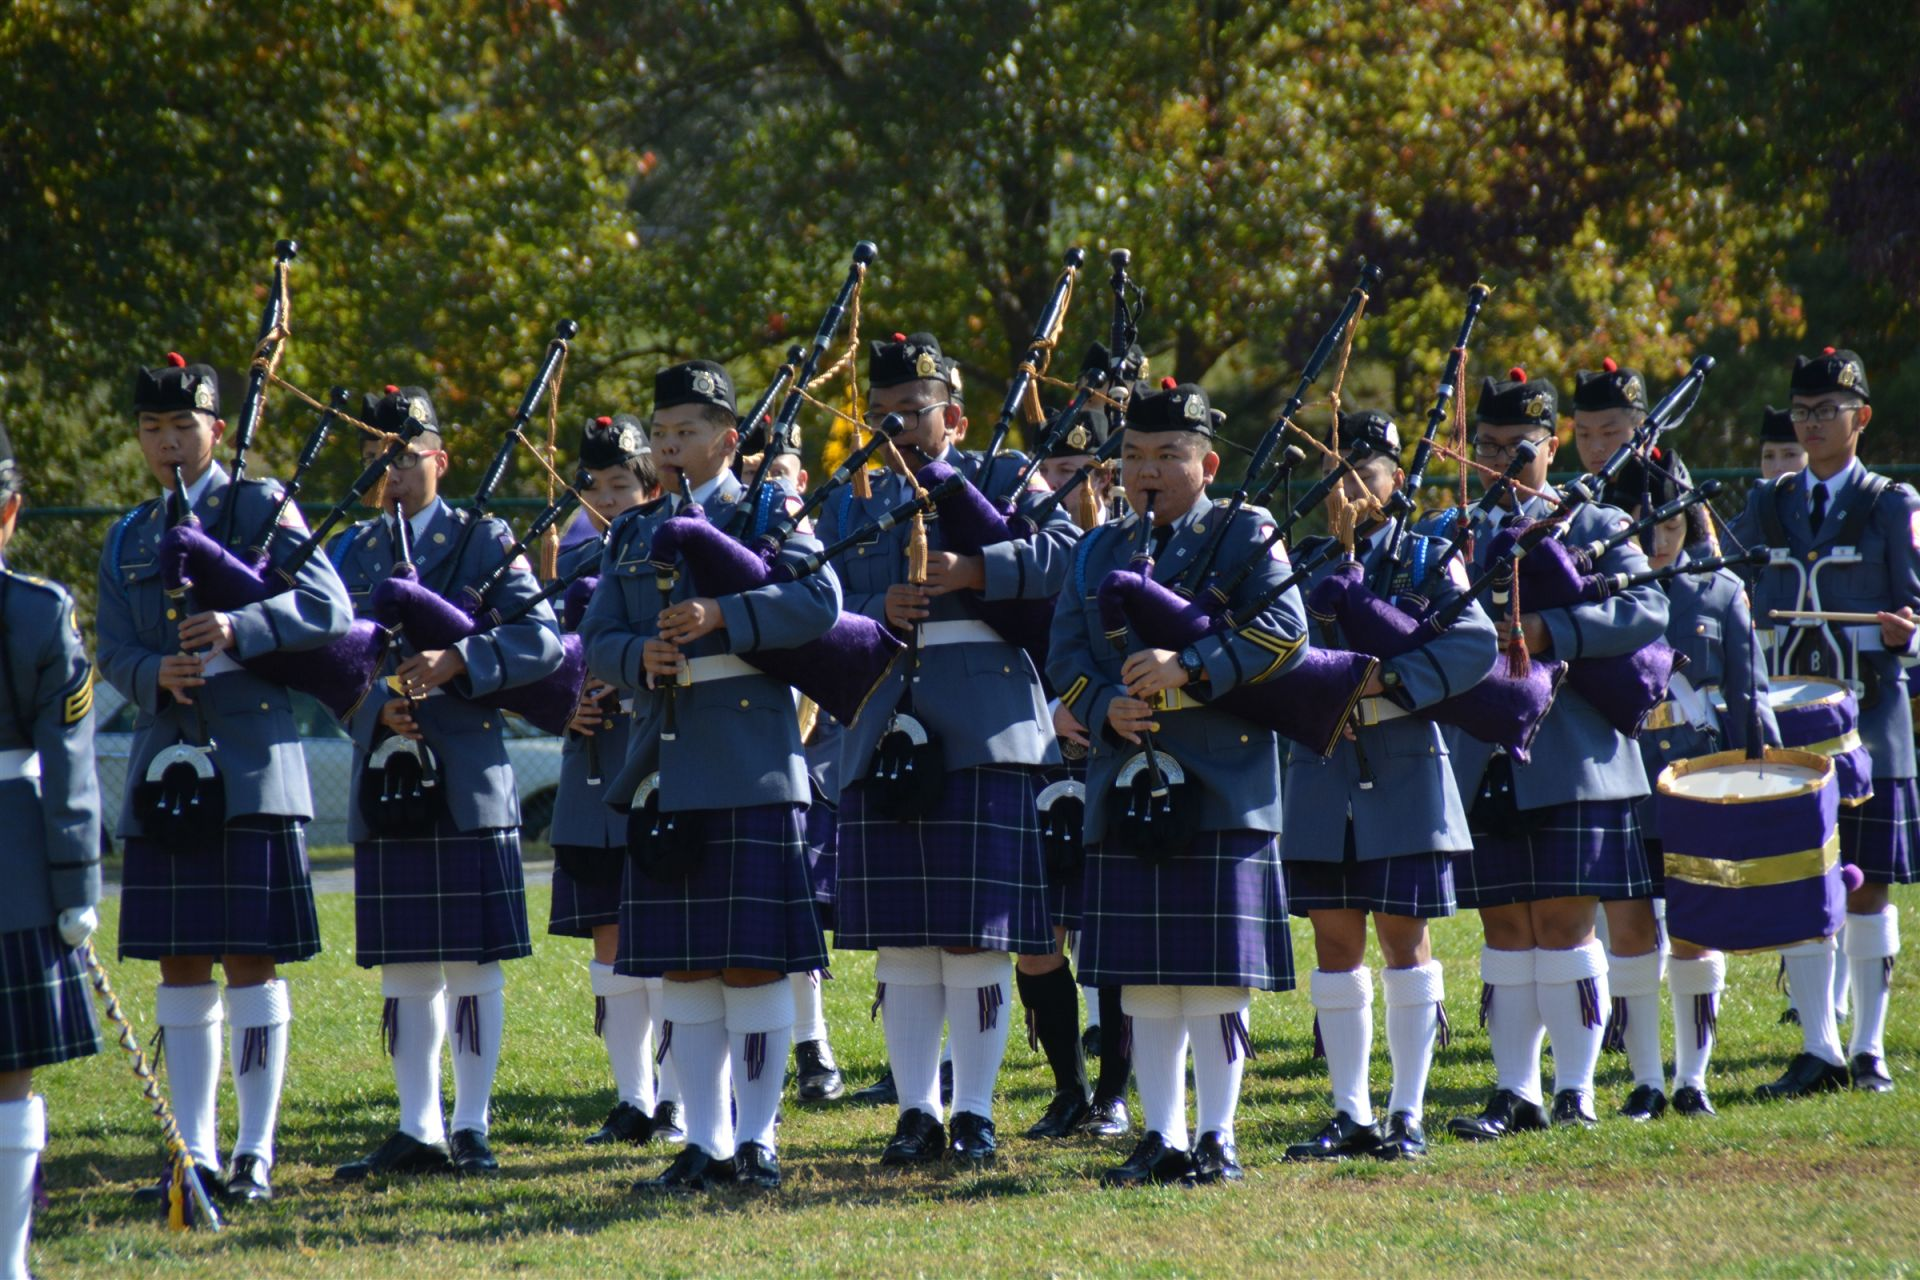 Massanutten Military Academy Pipes & Drums